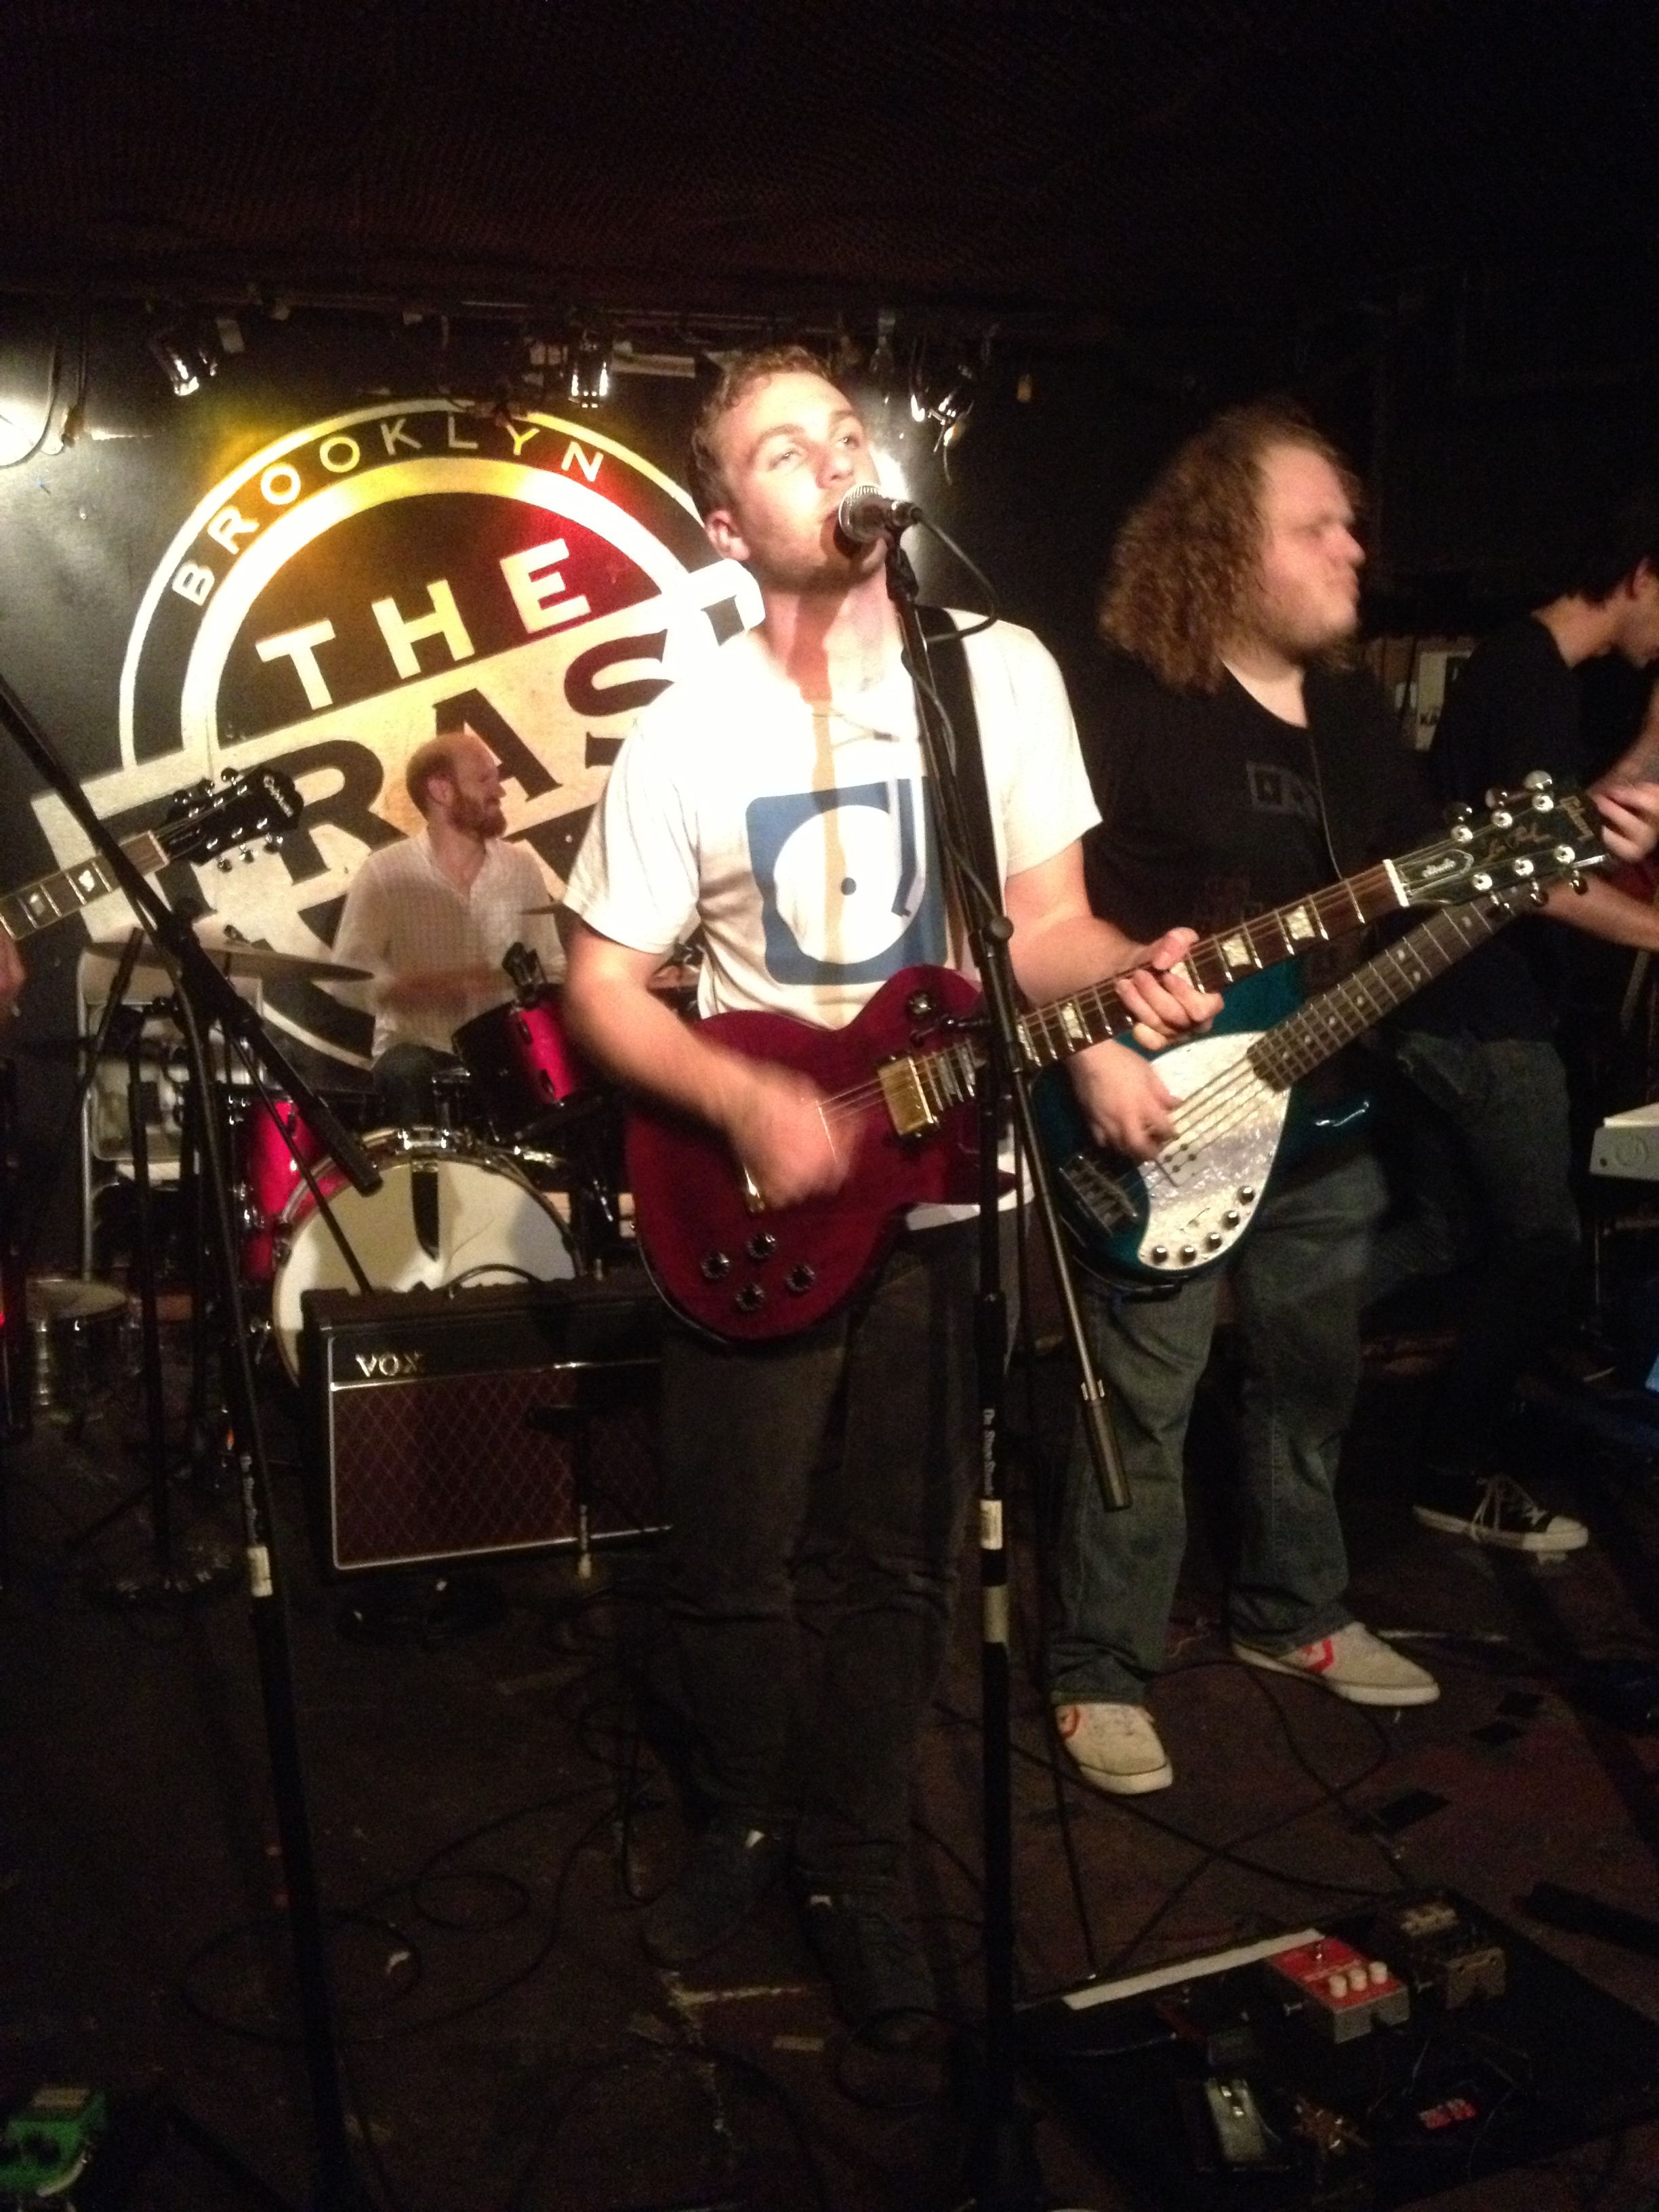 Stone Cold Fox performing at The Trash Bar 10/16/12 for CMJ 2012. #indie #cmj #livemusic #brooklyn @StoneColdFox